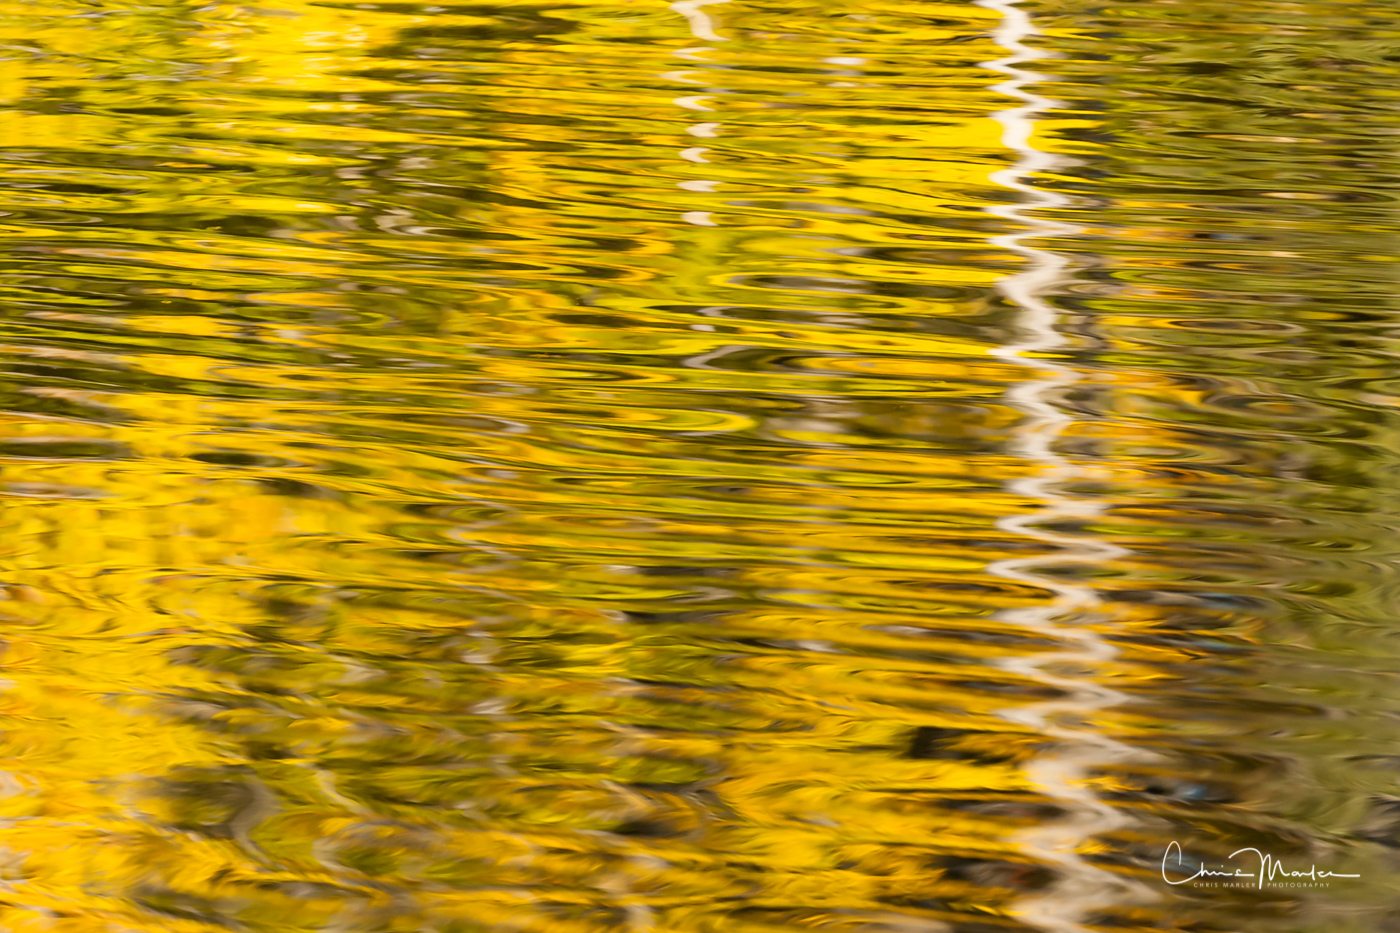 This abstract nature photography image is a reflection of white birch trees and yellow leaves in a Michigan lake. A slight breeze...